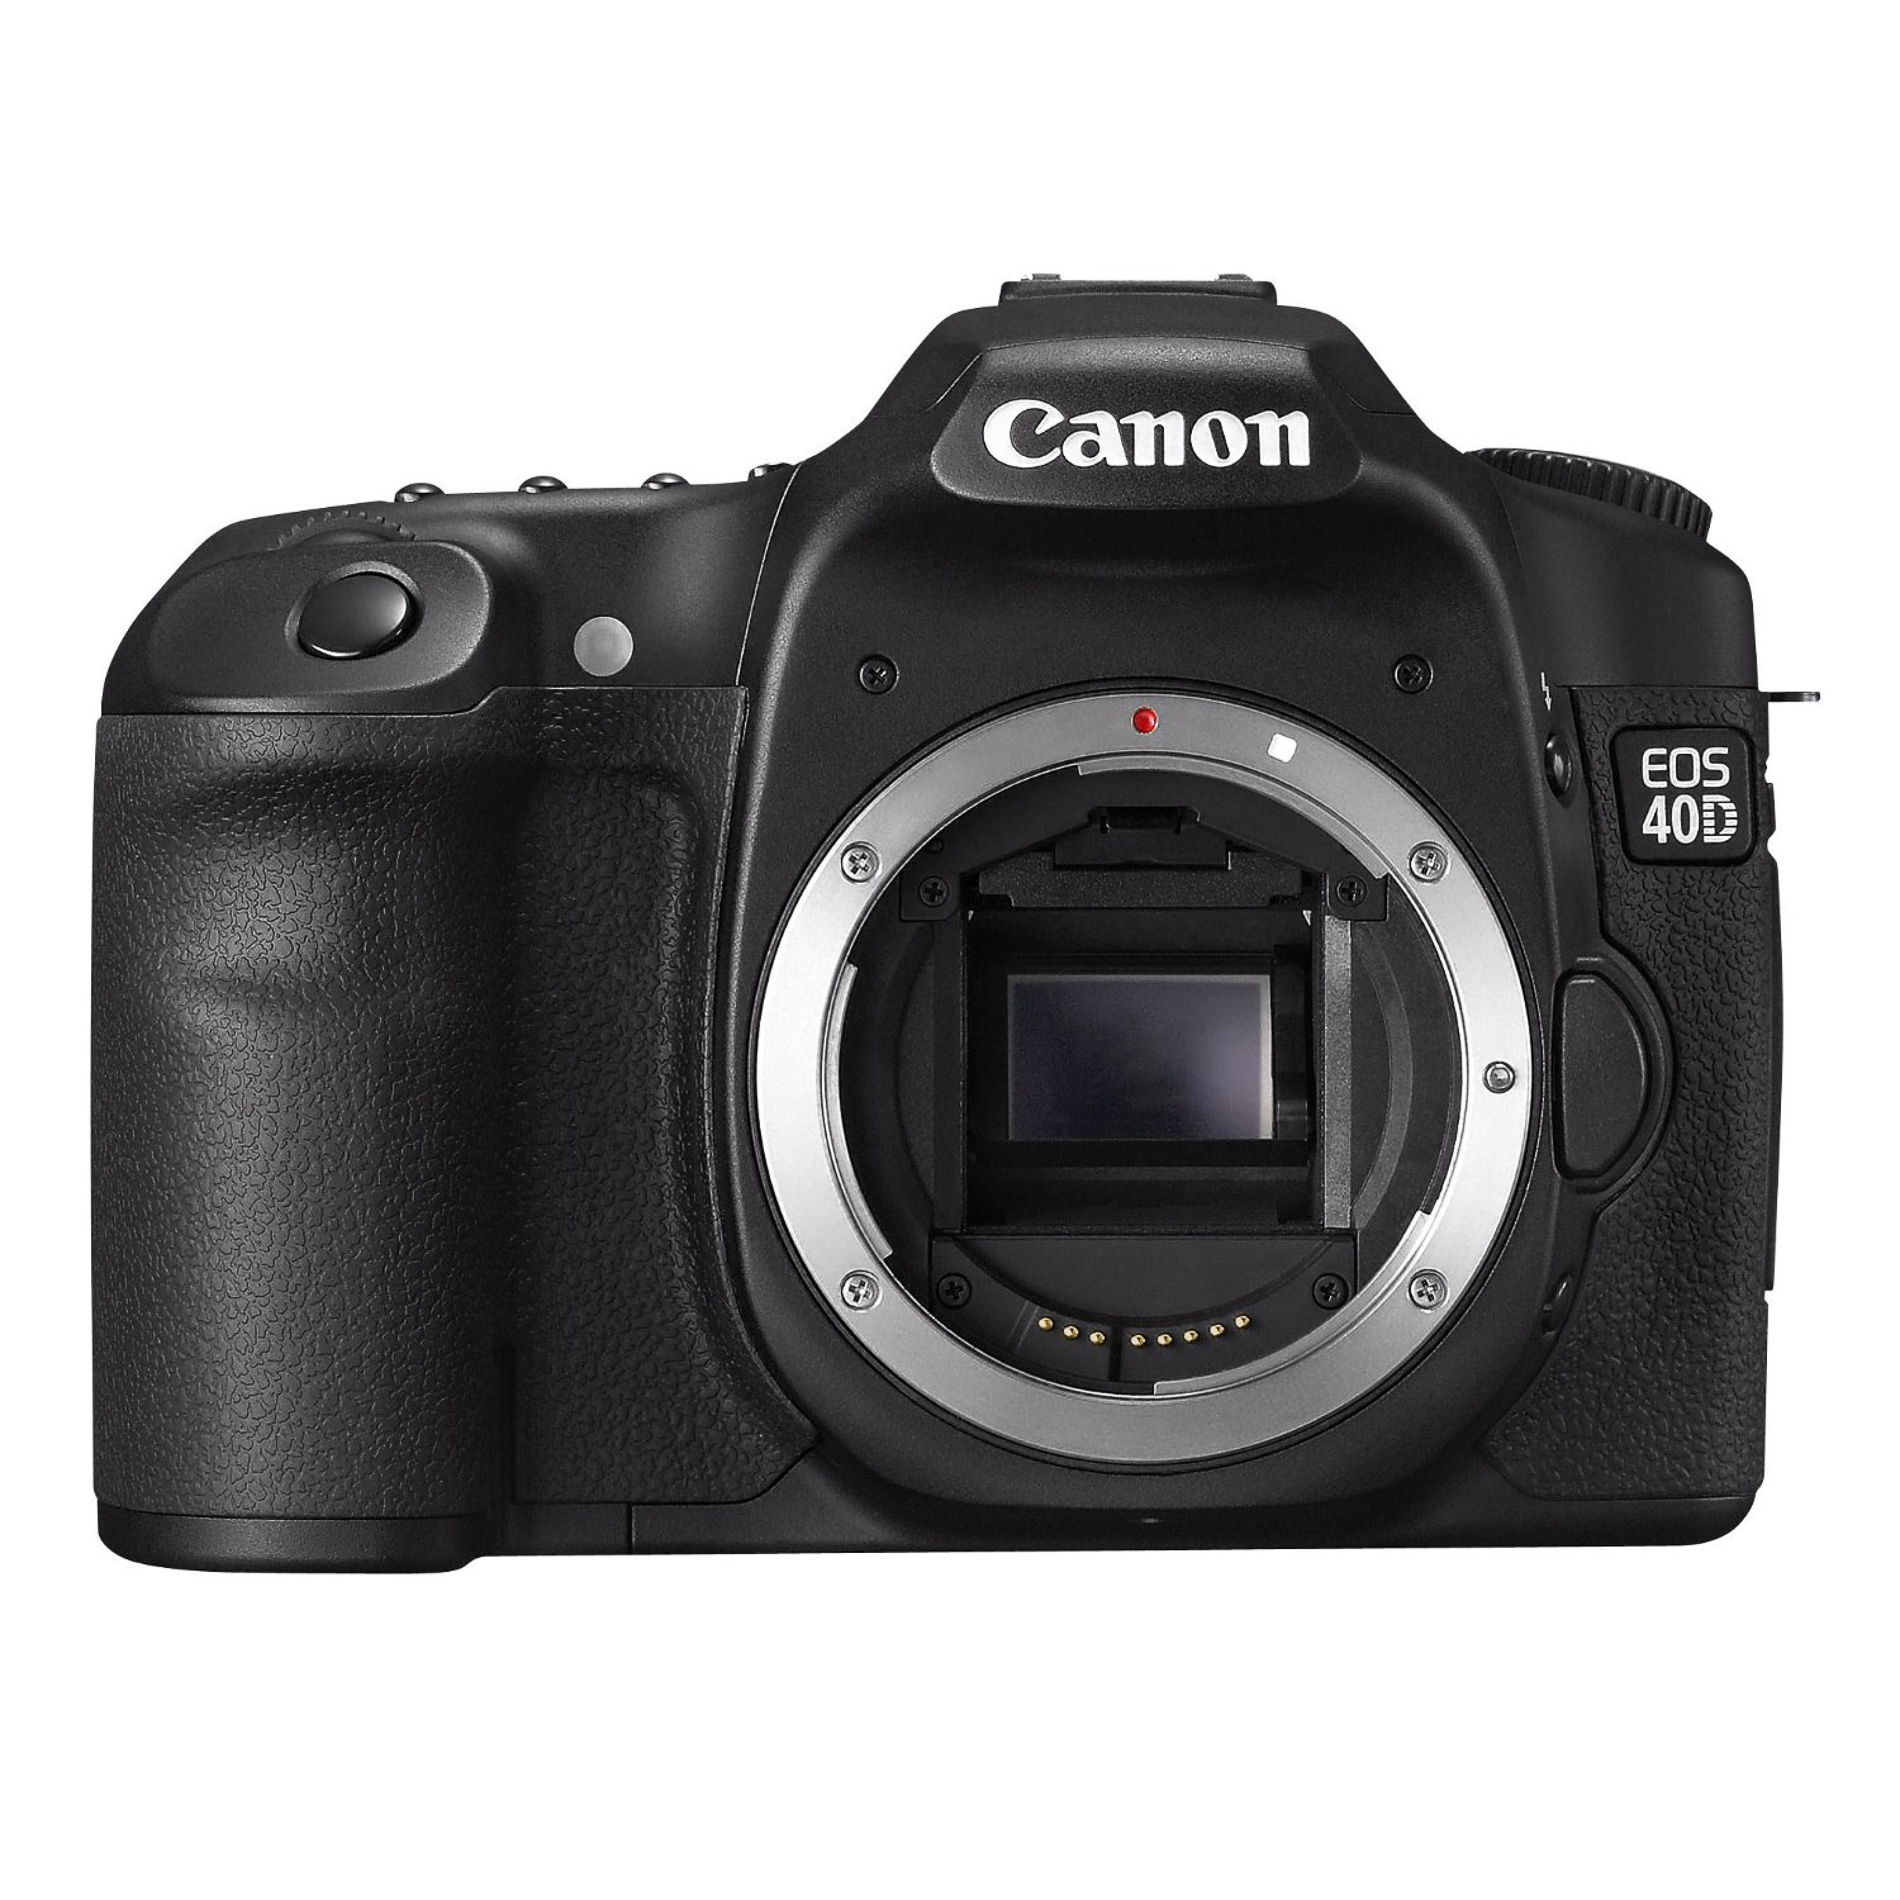 Camera Dslr Used Cameras For Sale used cameras dslrs national camera exchange condition avg